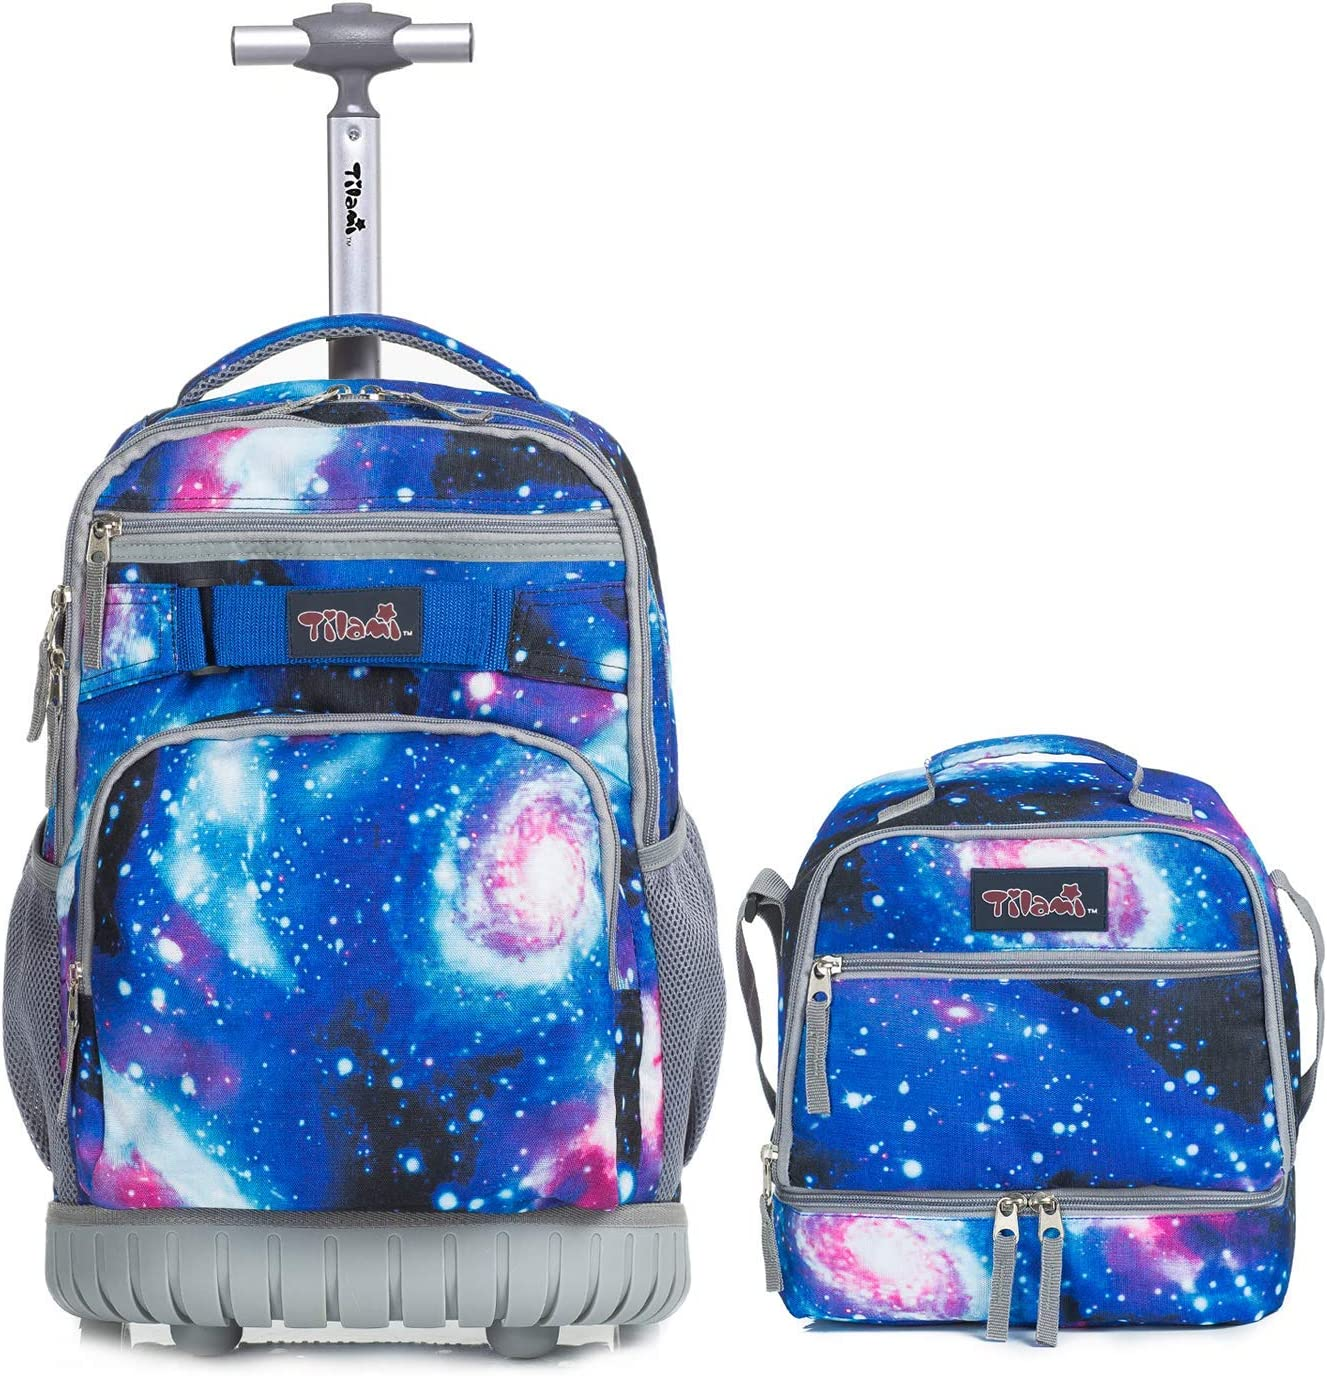 Tilami Rolling Backpack 19 inch with Lunch Bag Wheeled Laptop Backpack, Galaxy